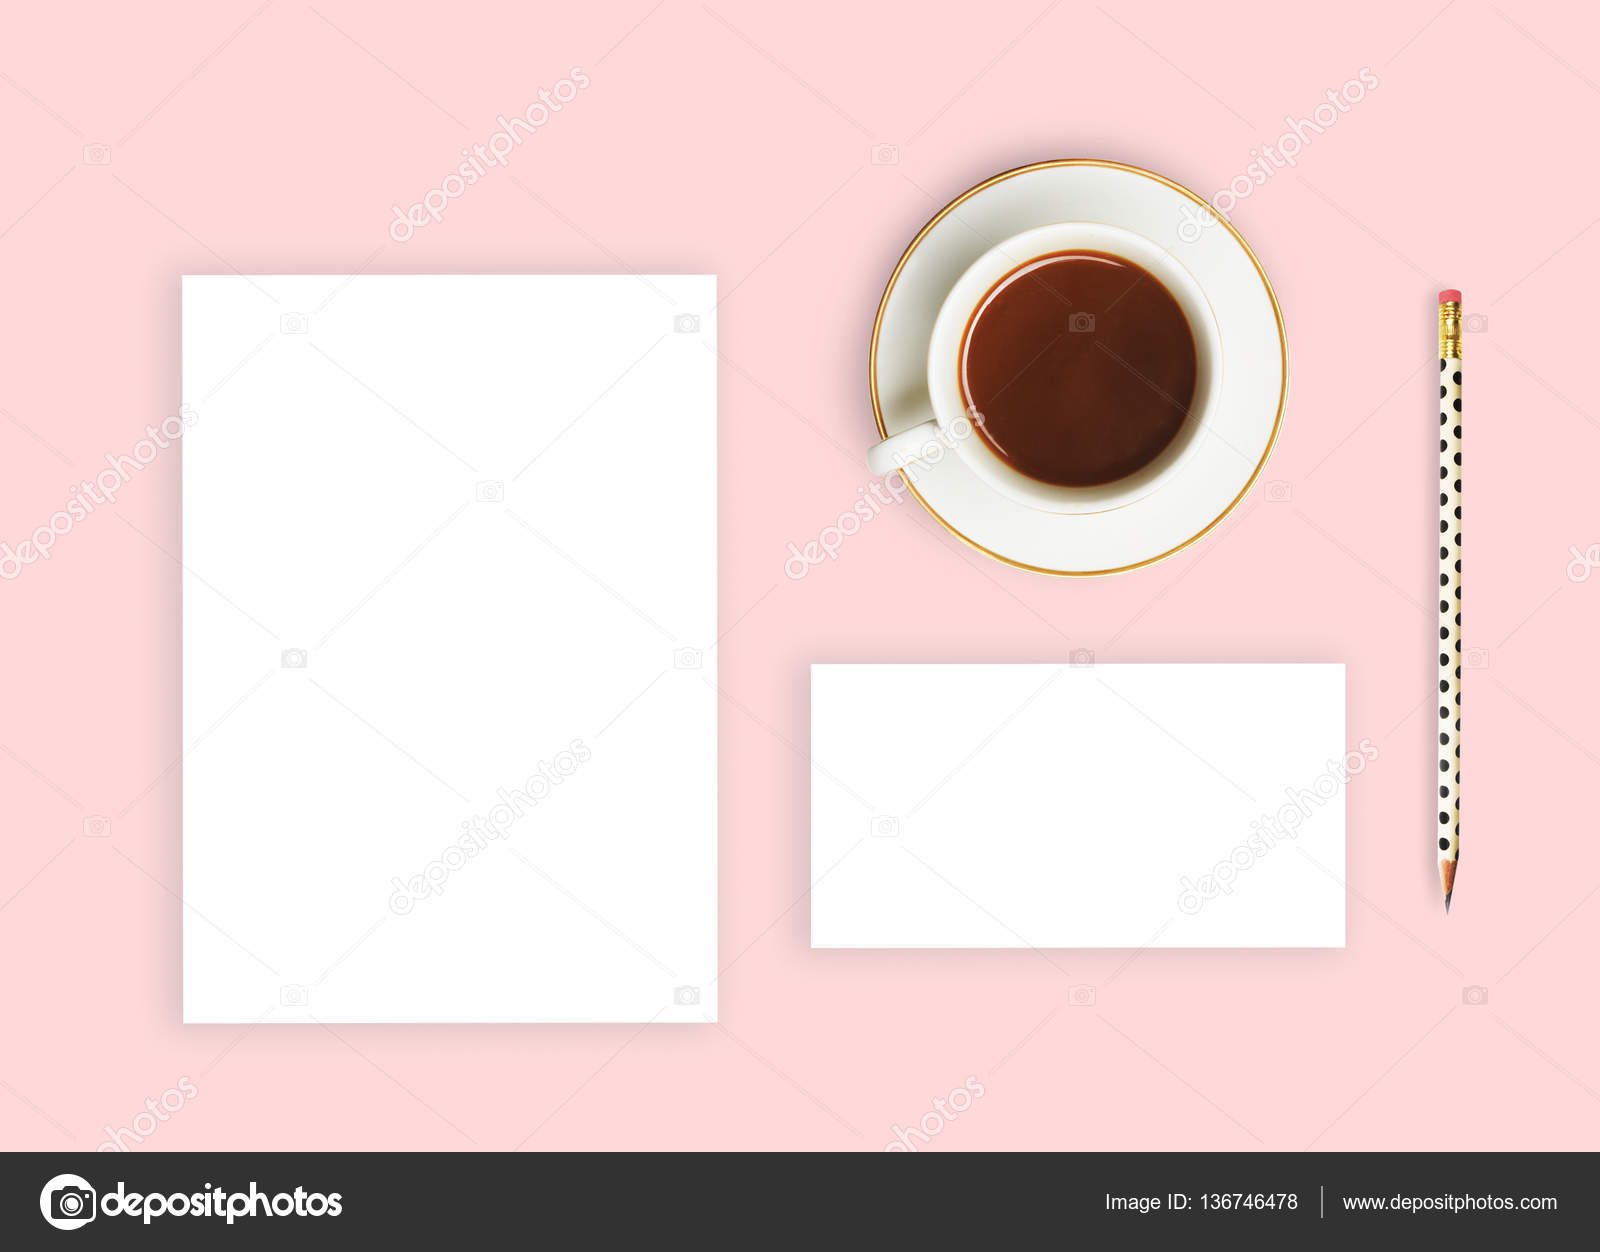 Branding Mockups Set Template Flat Lay Glamour Style Wedding Invitation Photo By Shatenka07